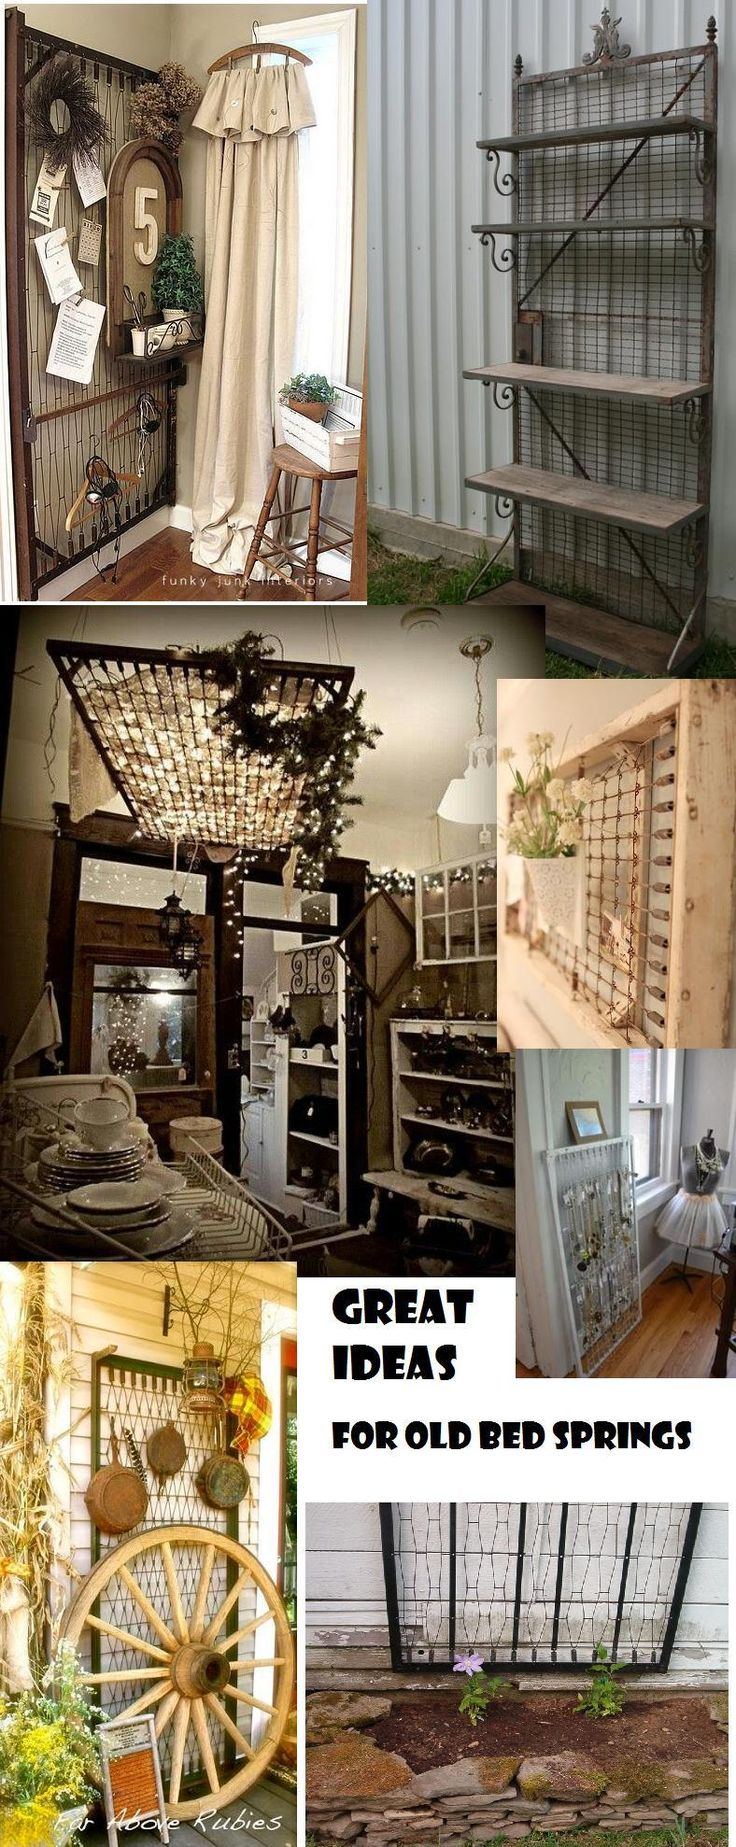 Great Ideas for Old Bed Springs